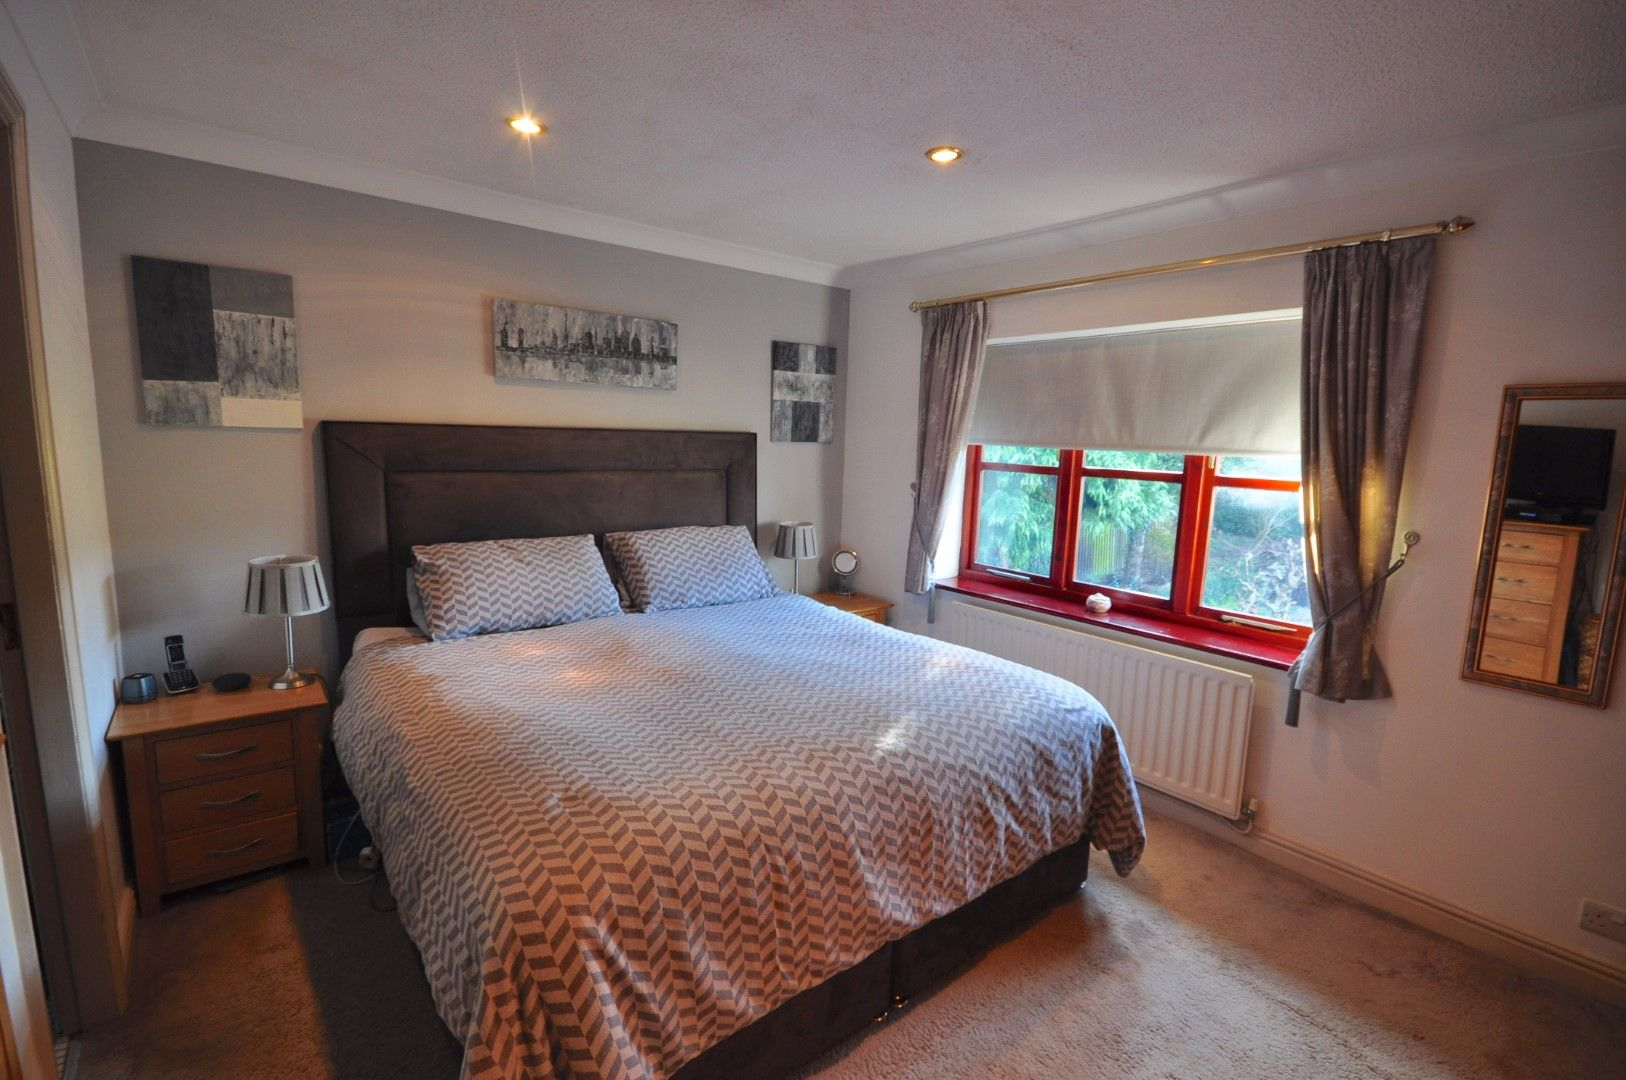 Image 1 of 2 of Bedroom One (Rear Left), on Accommodation Comprising for